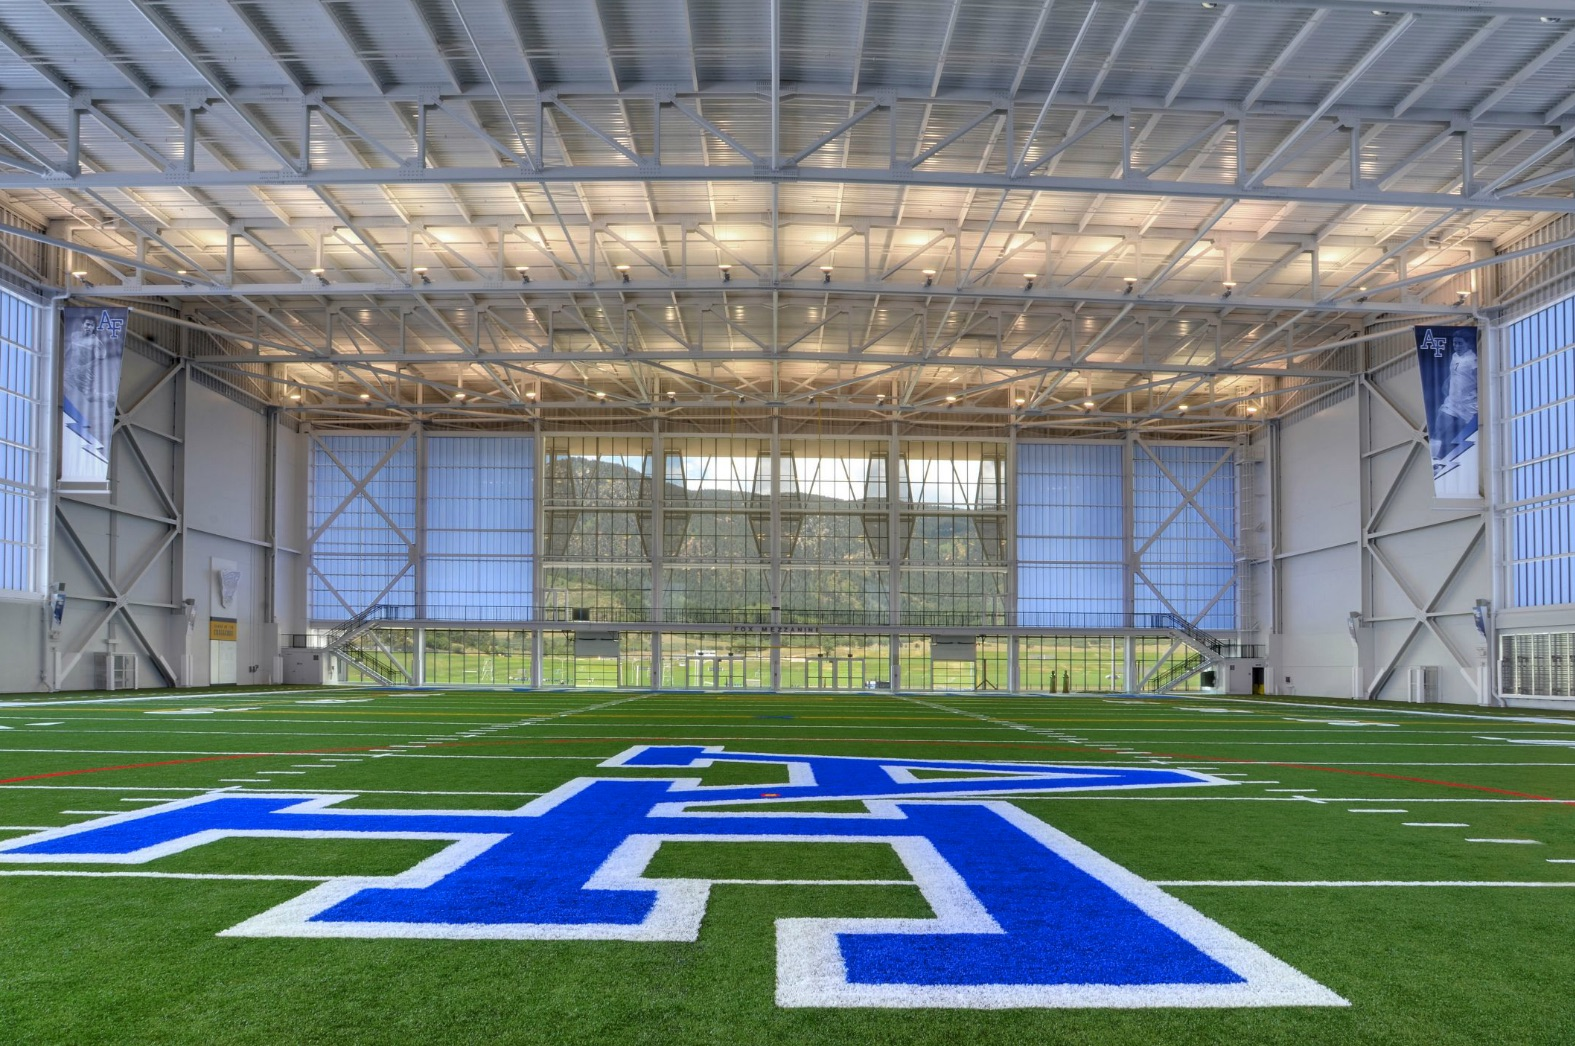 The Holaday Athletic Center (interior view)